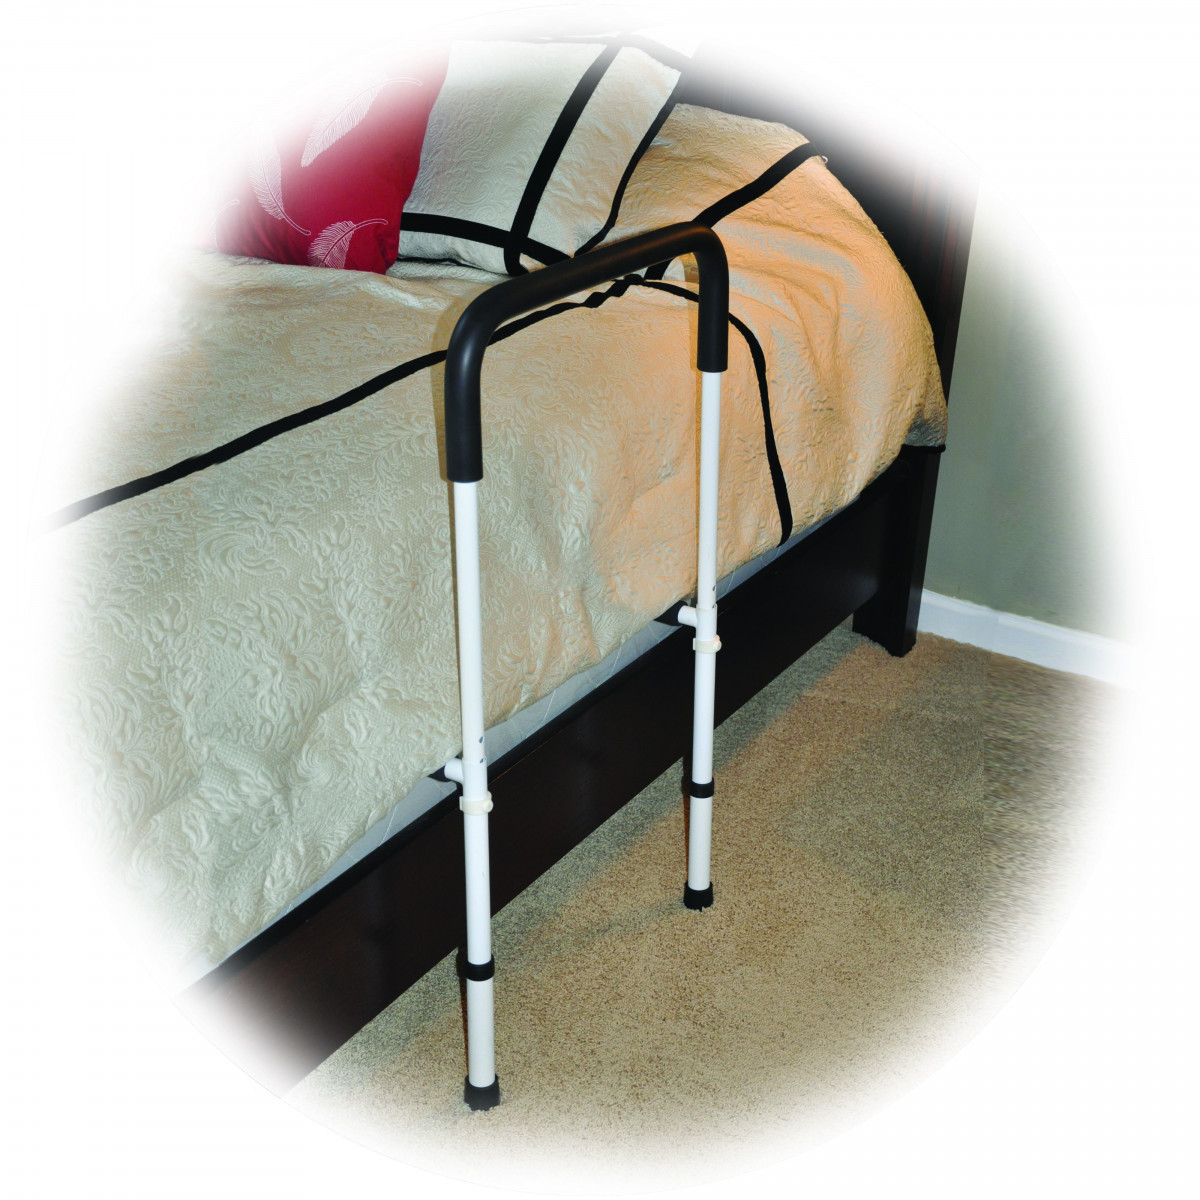 drive home bed assist rail adjustable height 044